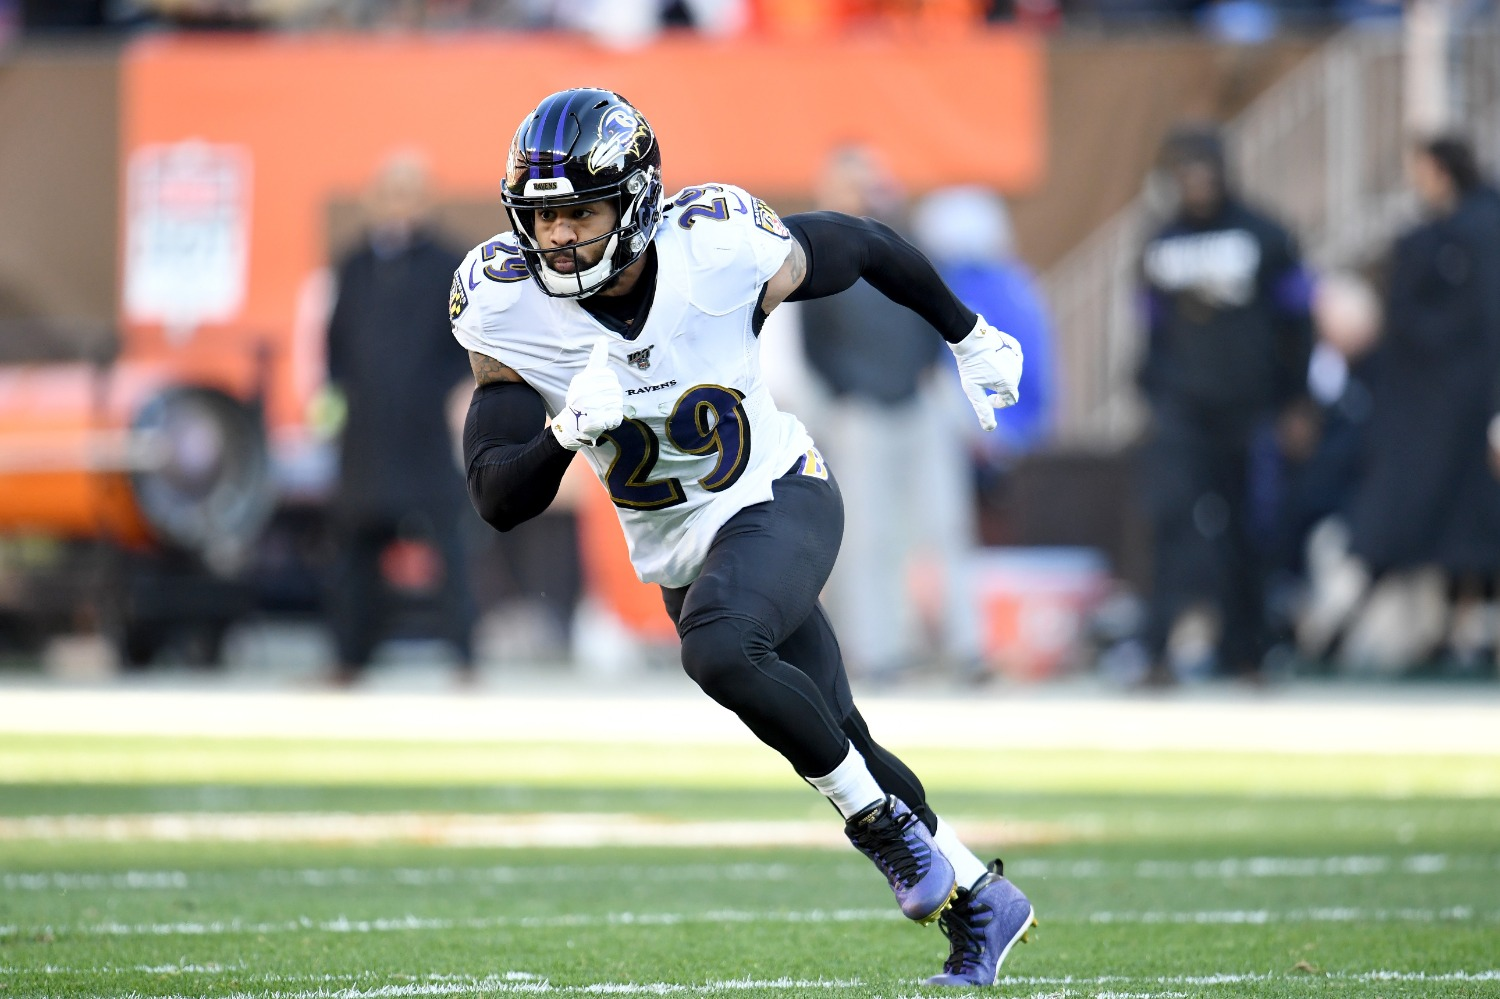 Earl Thomas just gained a potential landing spot with the Cleveland Browns losing rookie safety Grant Delpit for the year with a torn Achilles.